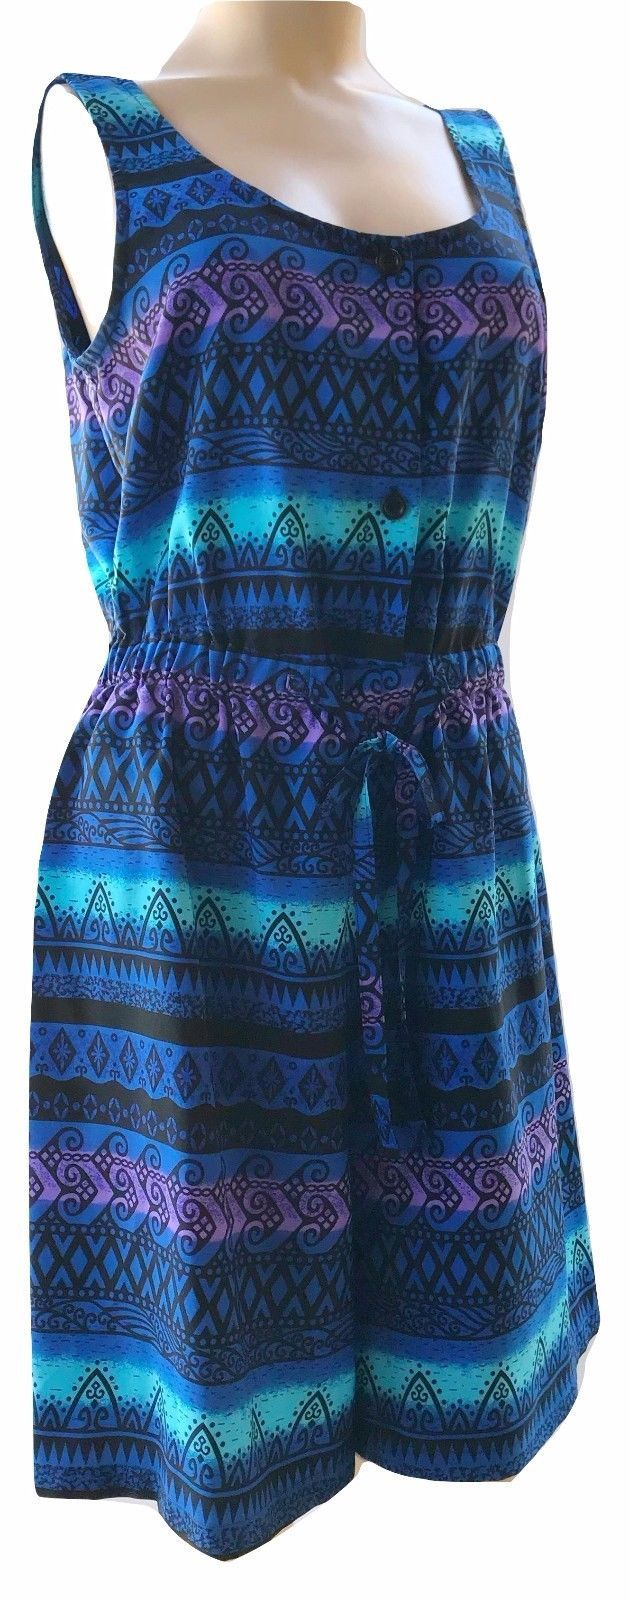 Kathie Lee Collection Sleeveless Romper Smocked Waist Size 8